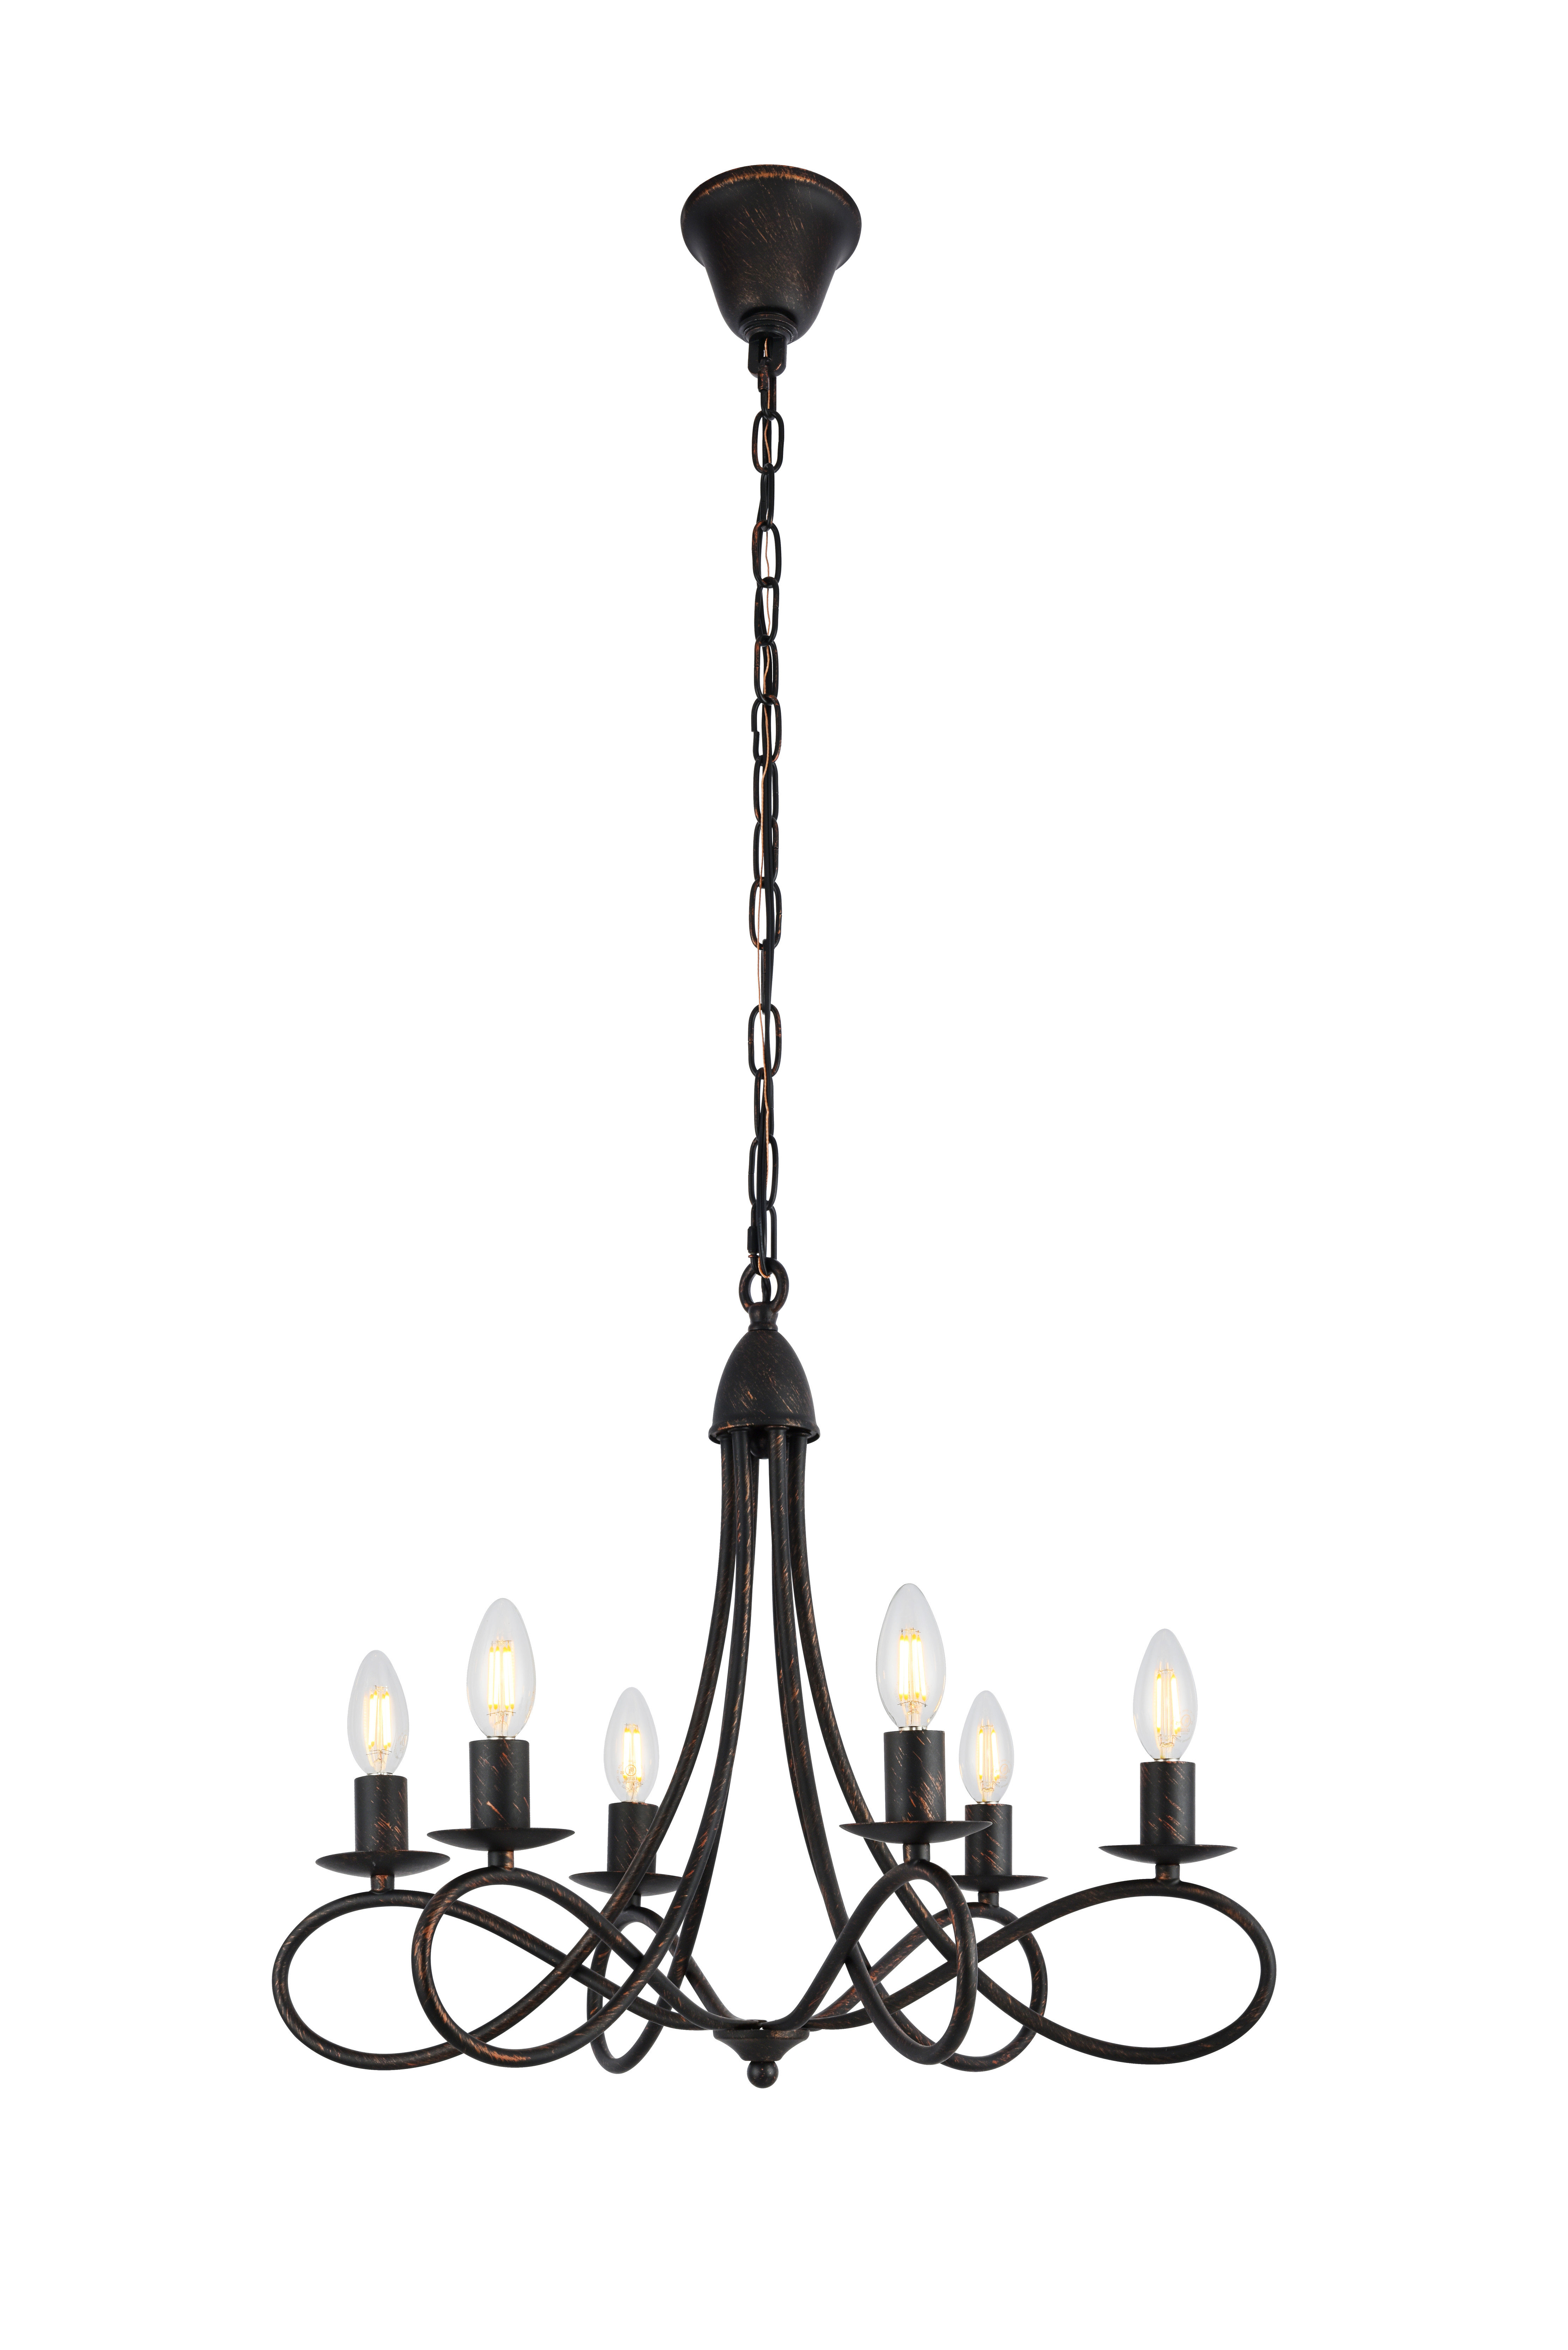 Darby Home Co Diaz 6 Light Candle Style Chandelier For Best And Newest Sherri 6 Light Chandeliers (Gallery 11 of 25)